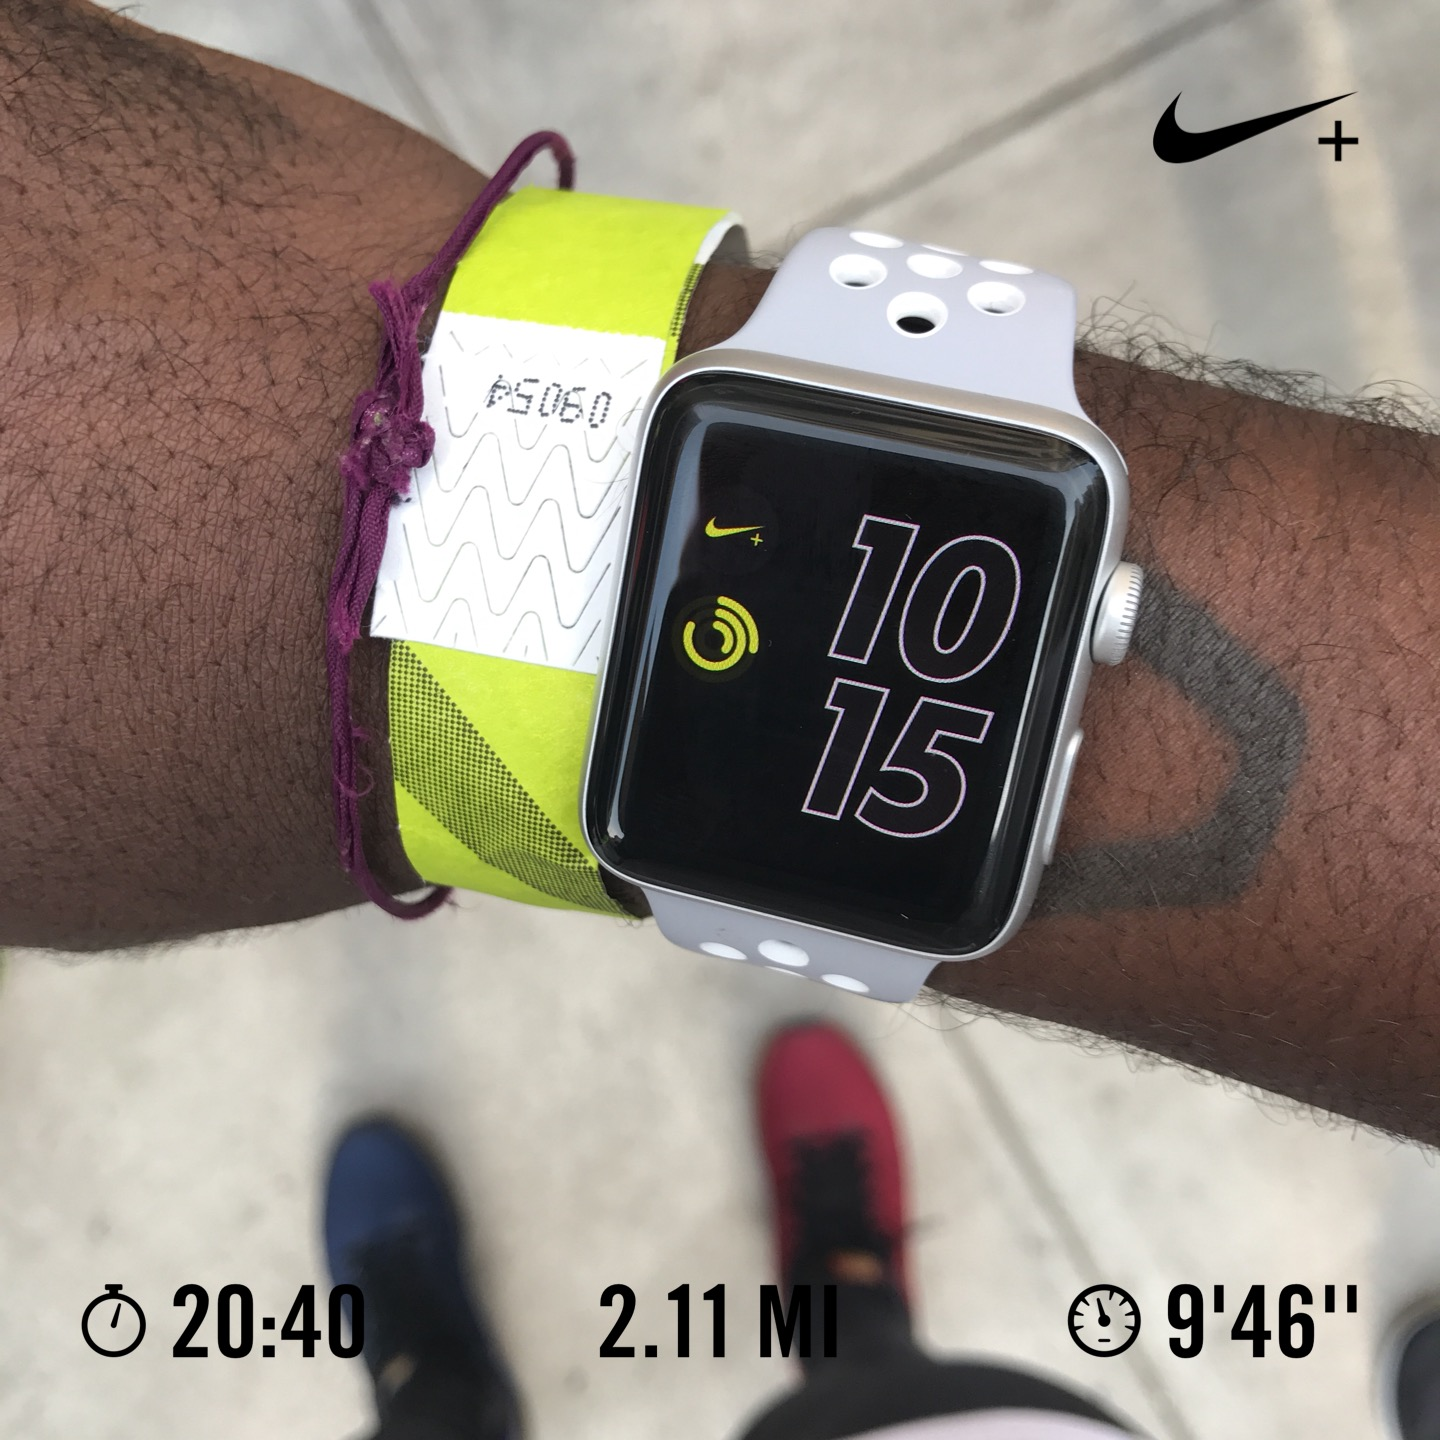 Checking my new Apple Watch Nike+ after the 2 mile run. #NYMade